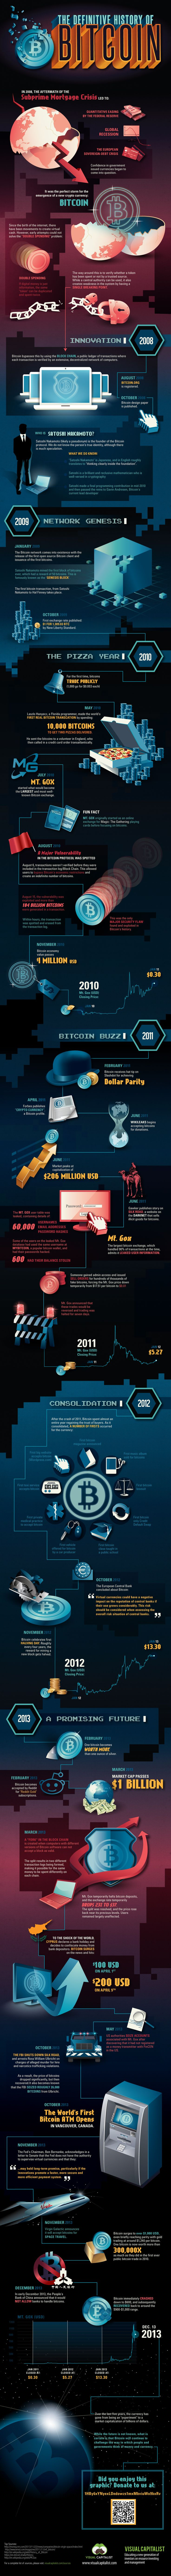 The Definitive History Of Bitcoin #Infographic